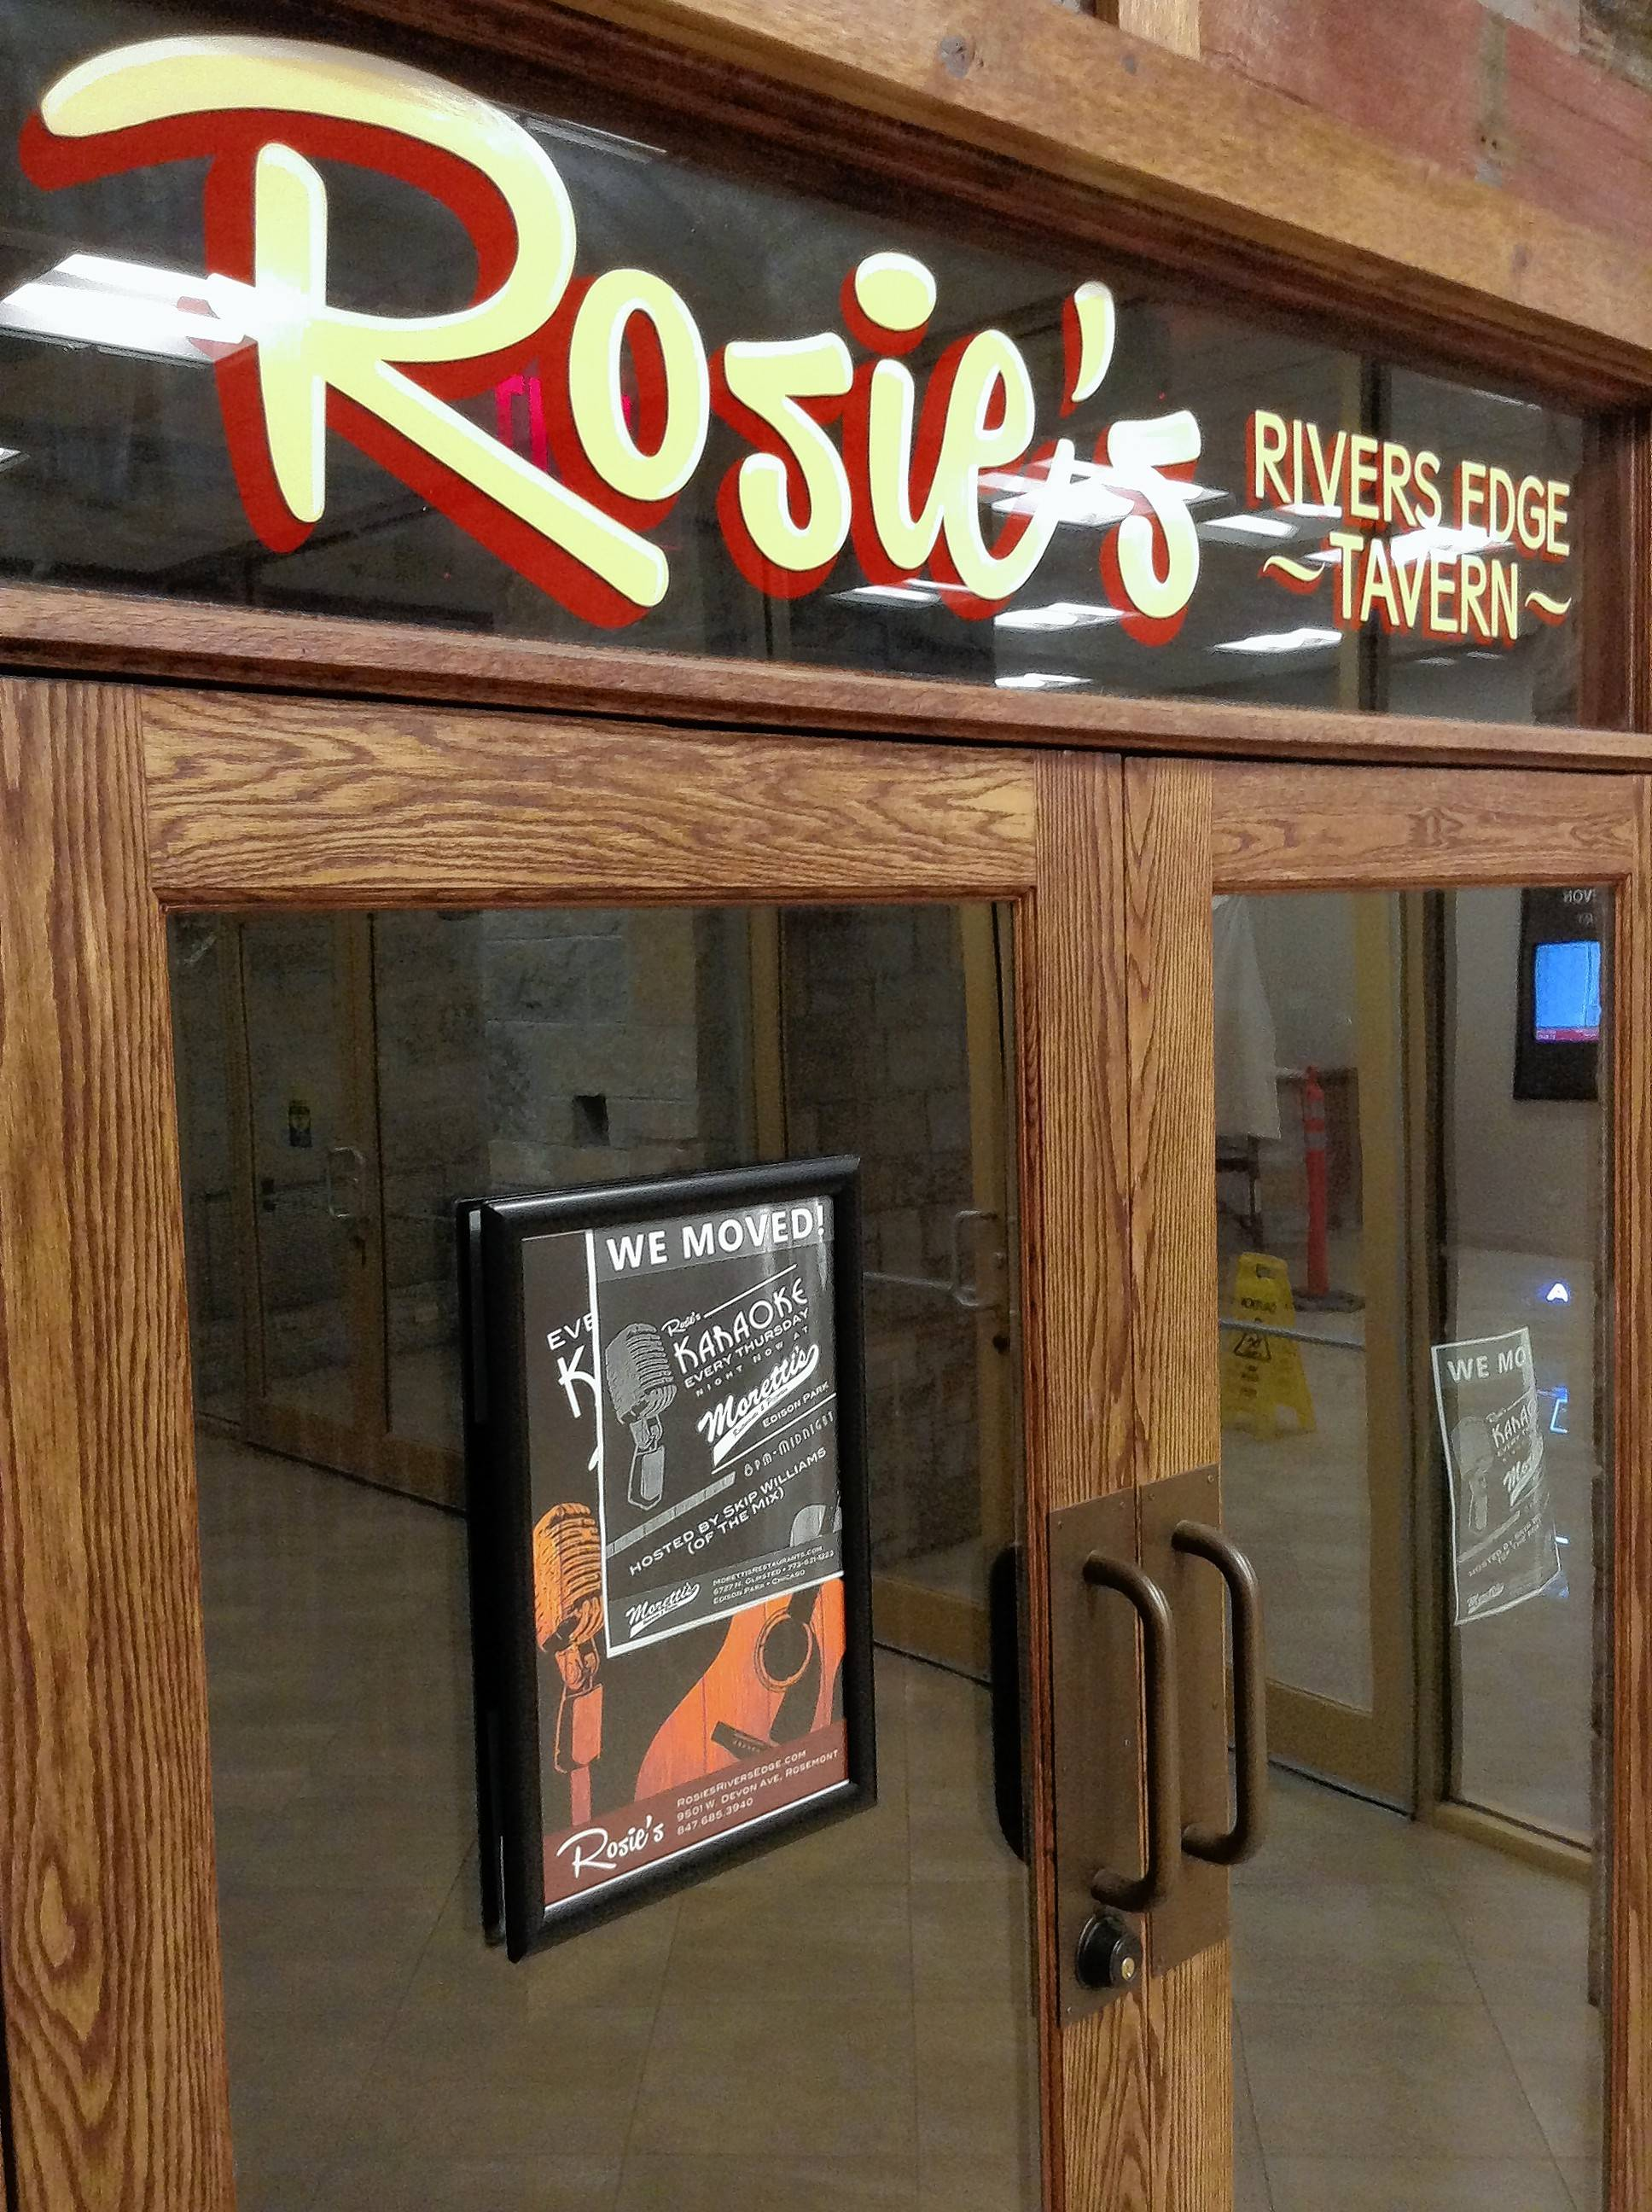 Gino's East to replace Rosie's River Edge Tavern in Rosemont